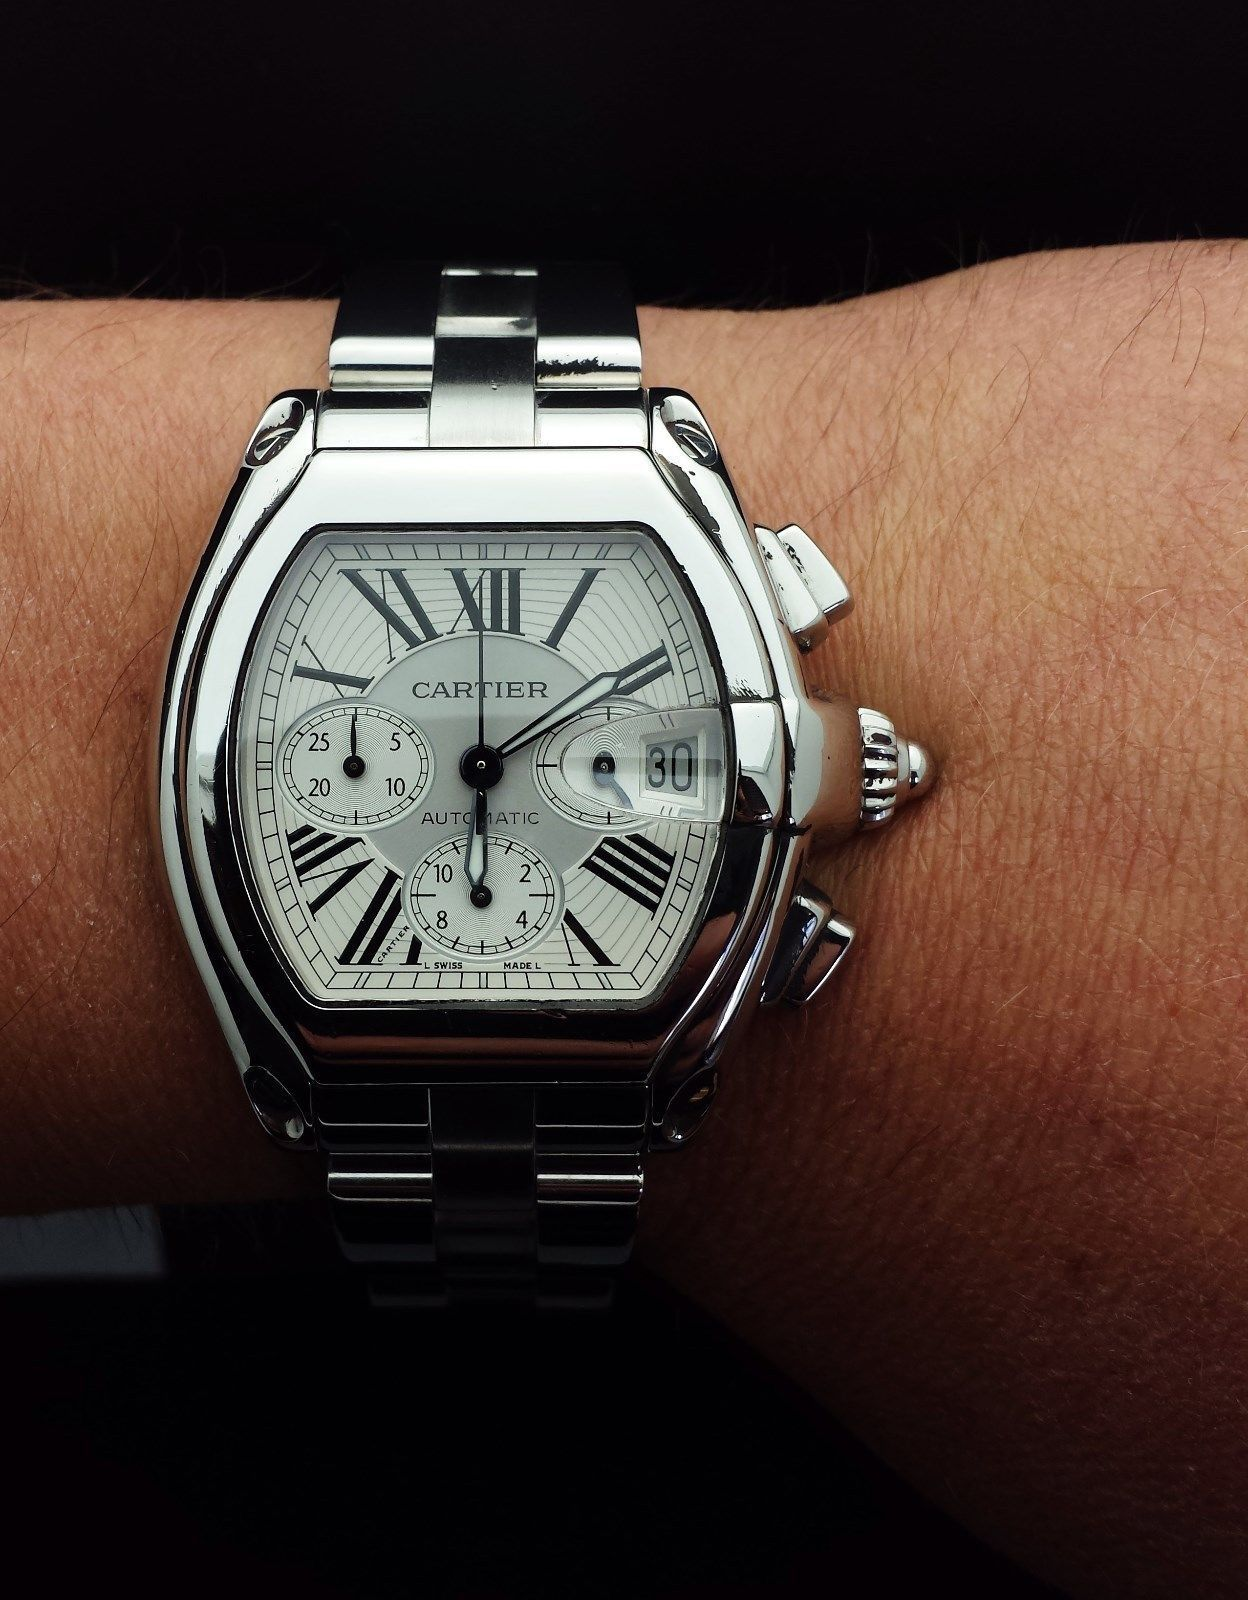 7e34a20bc43 Authentic Cartier Roadster Wrist Watch for Men